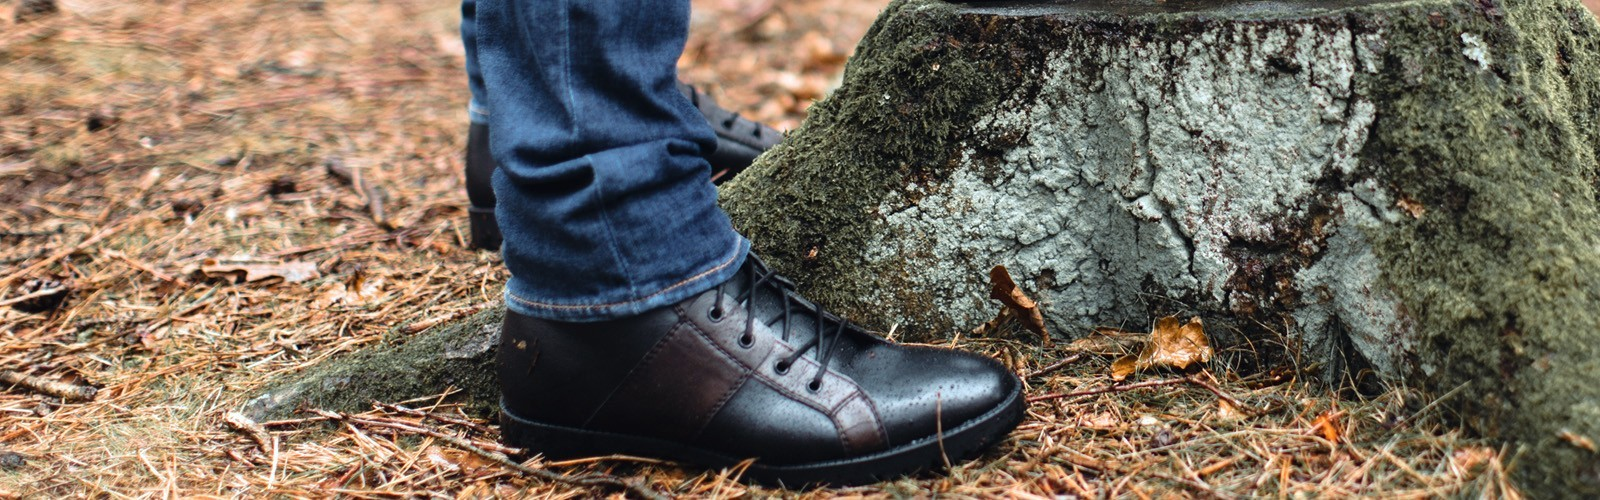 Vegan boots for men